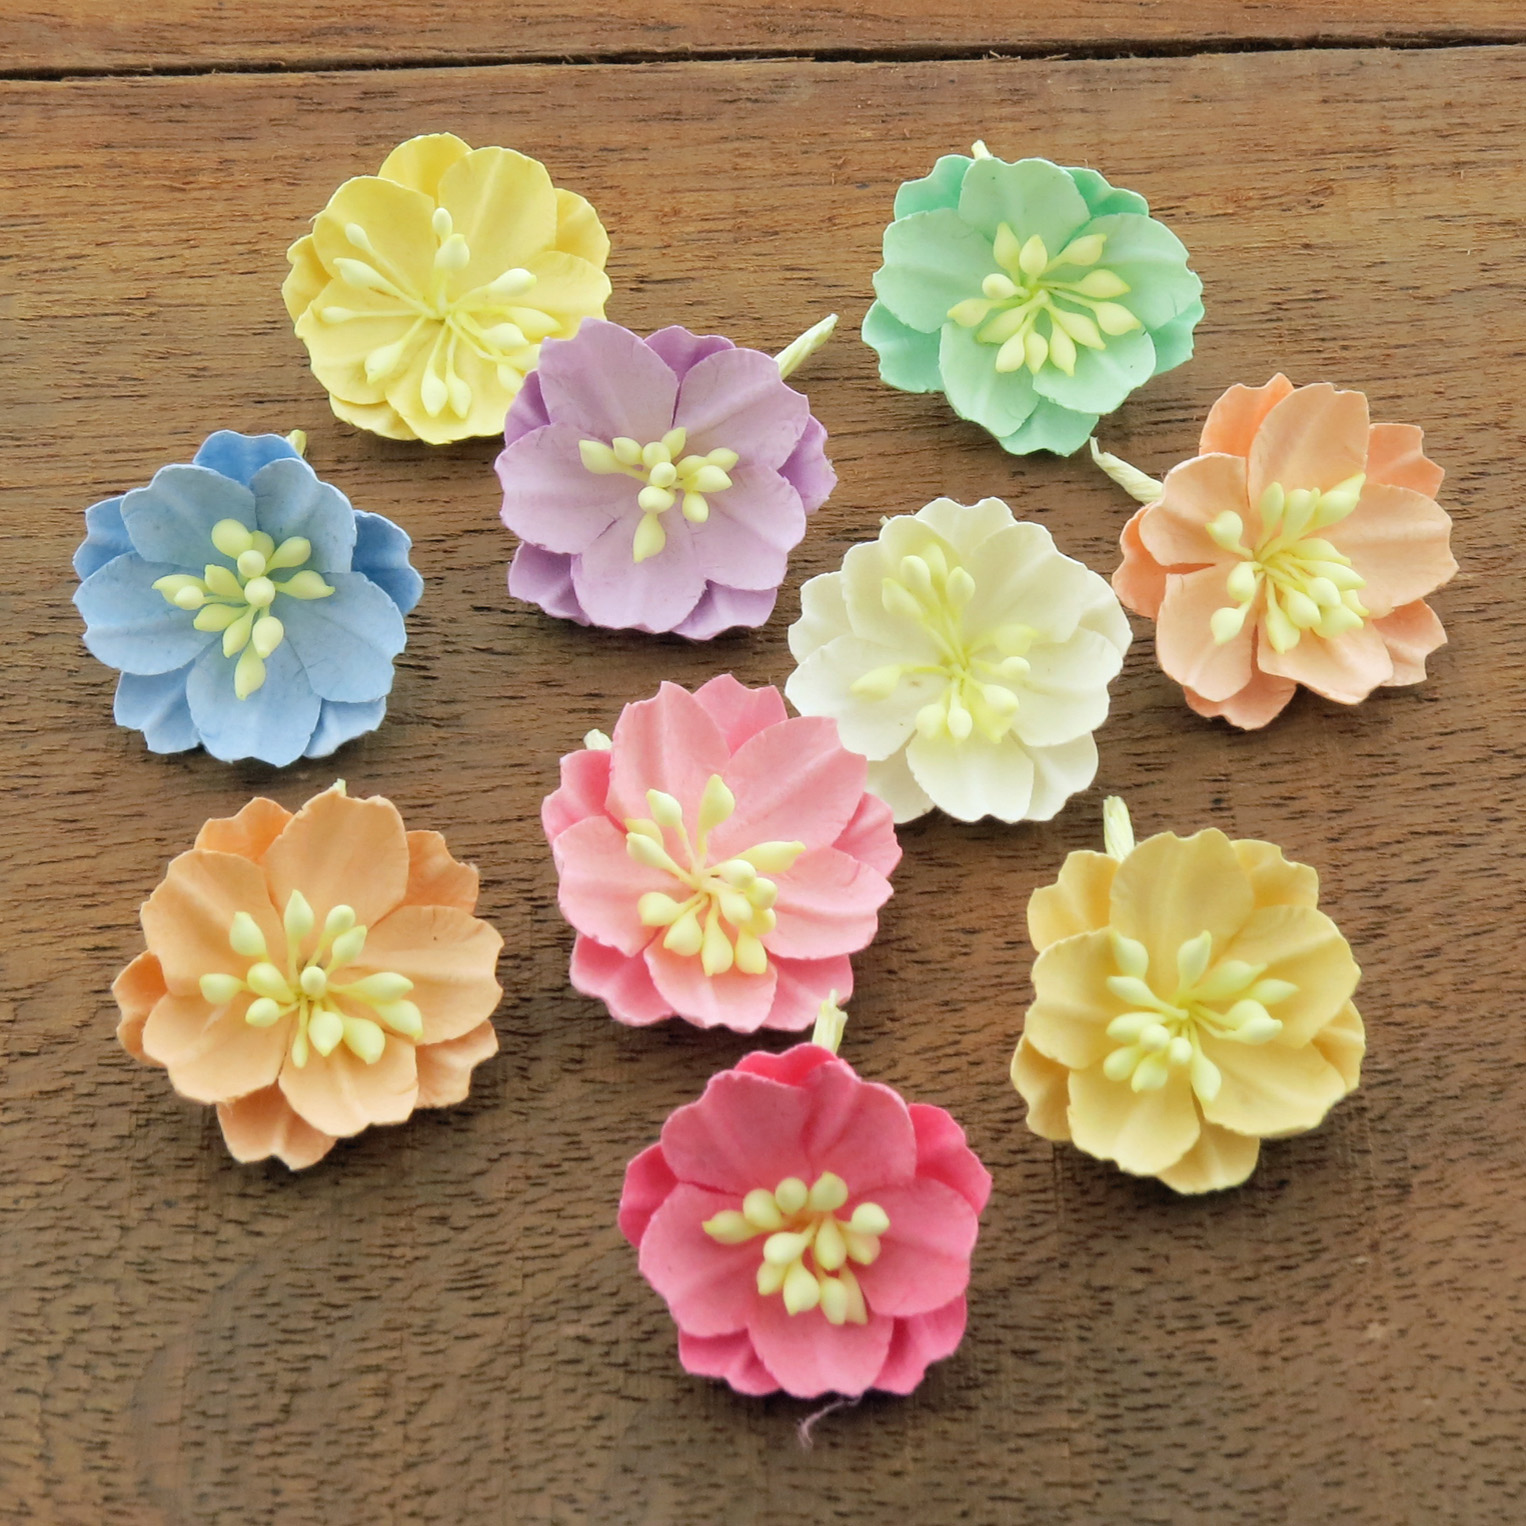 MIXED PASTEL COTTON STEM MULBERRY PAPER FLOWERS - SET A